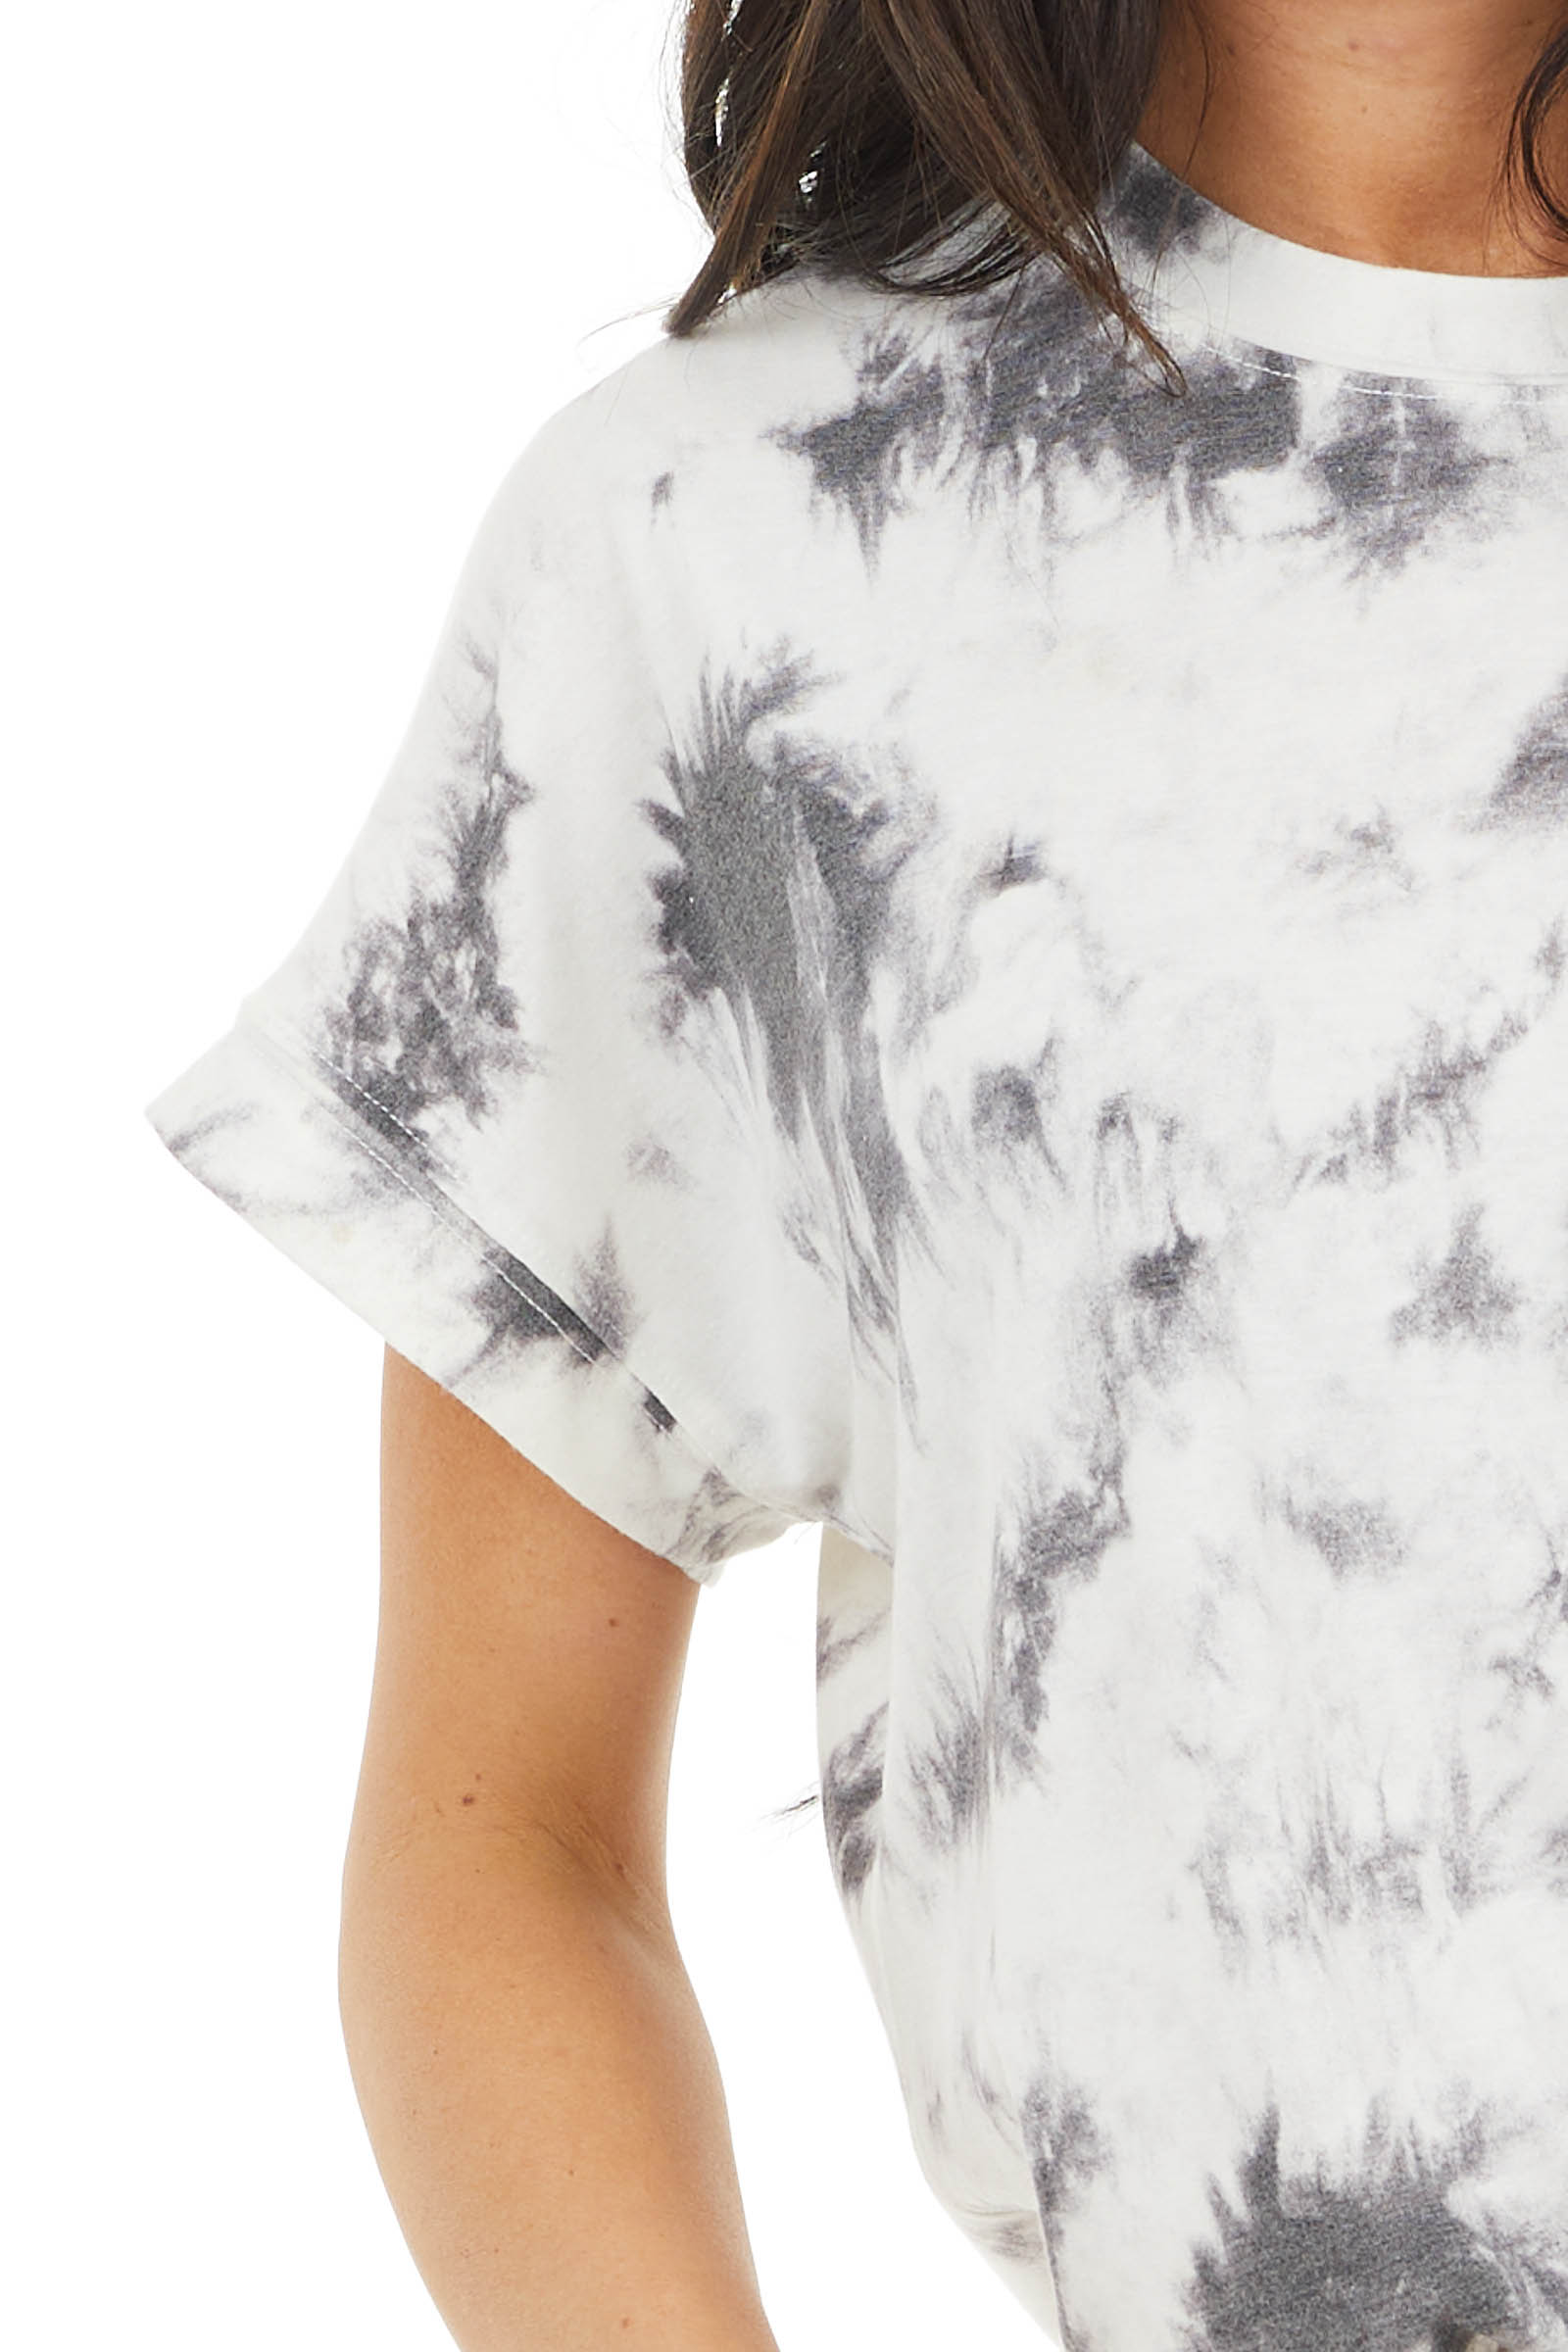 Charcoal and Cream Tie Dye Short Sleeve Super Soft Top